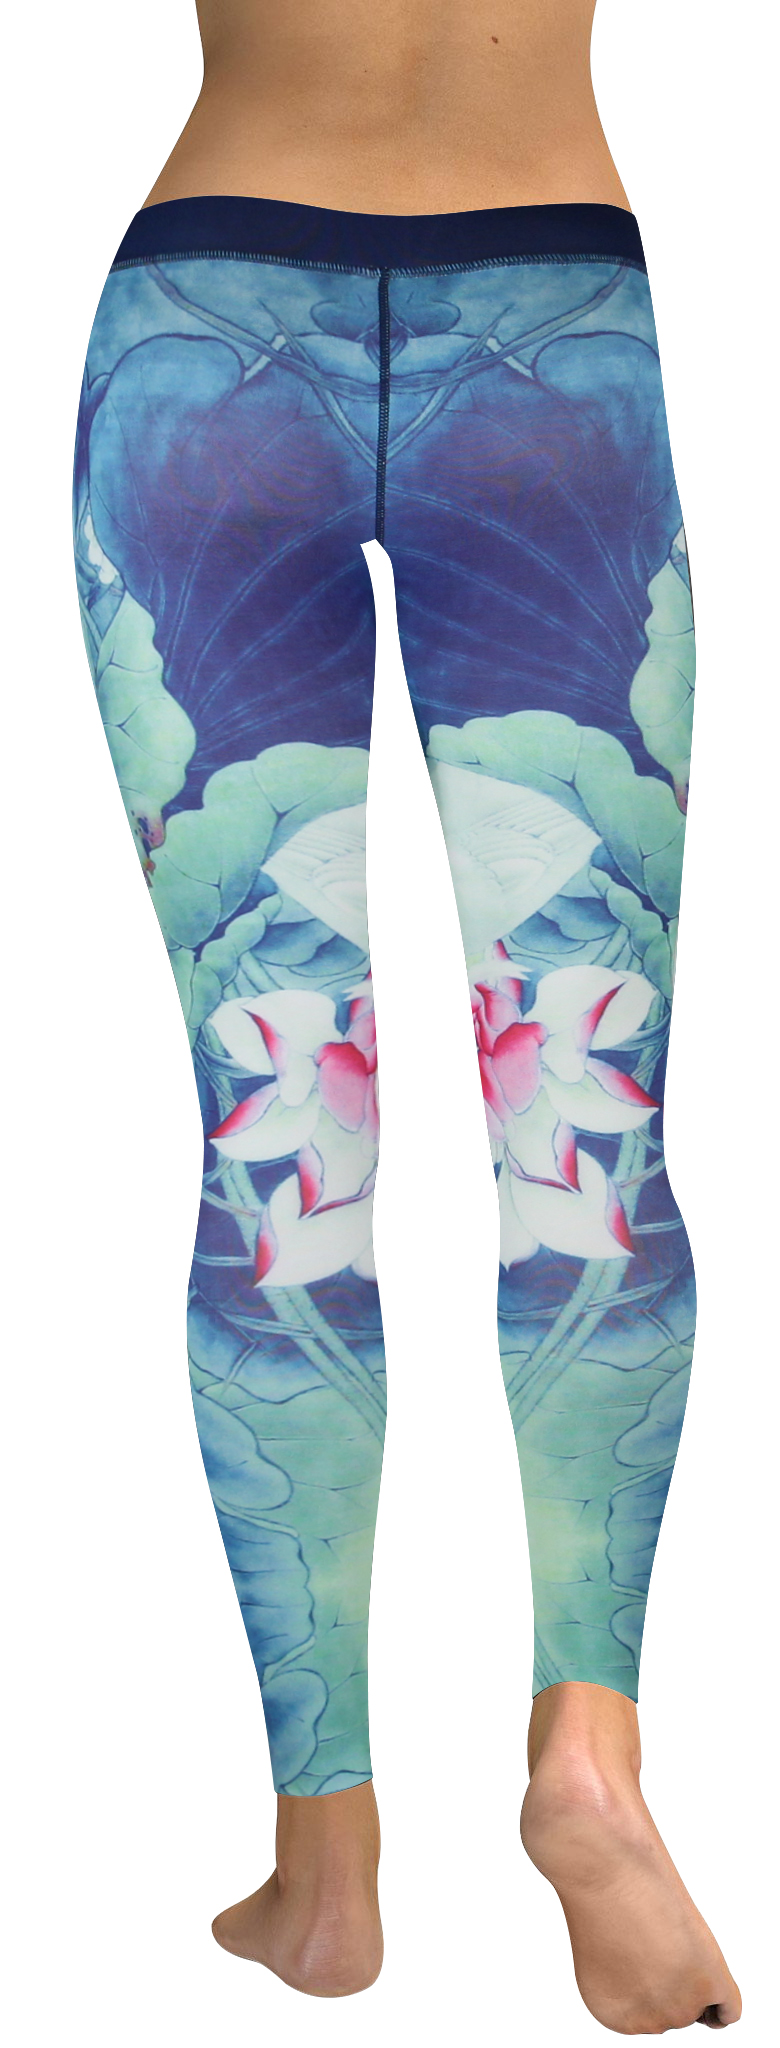 High waistband Blue lotus leave legging (2)